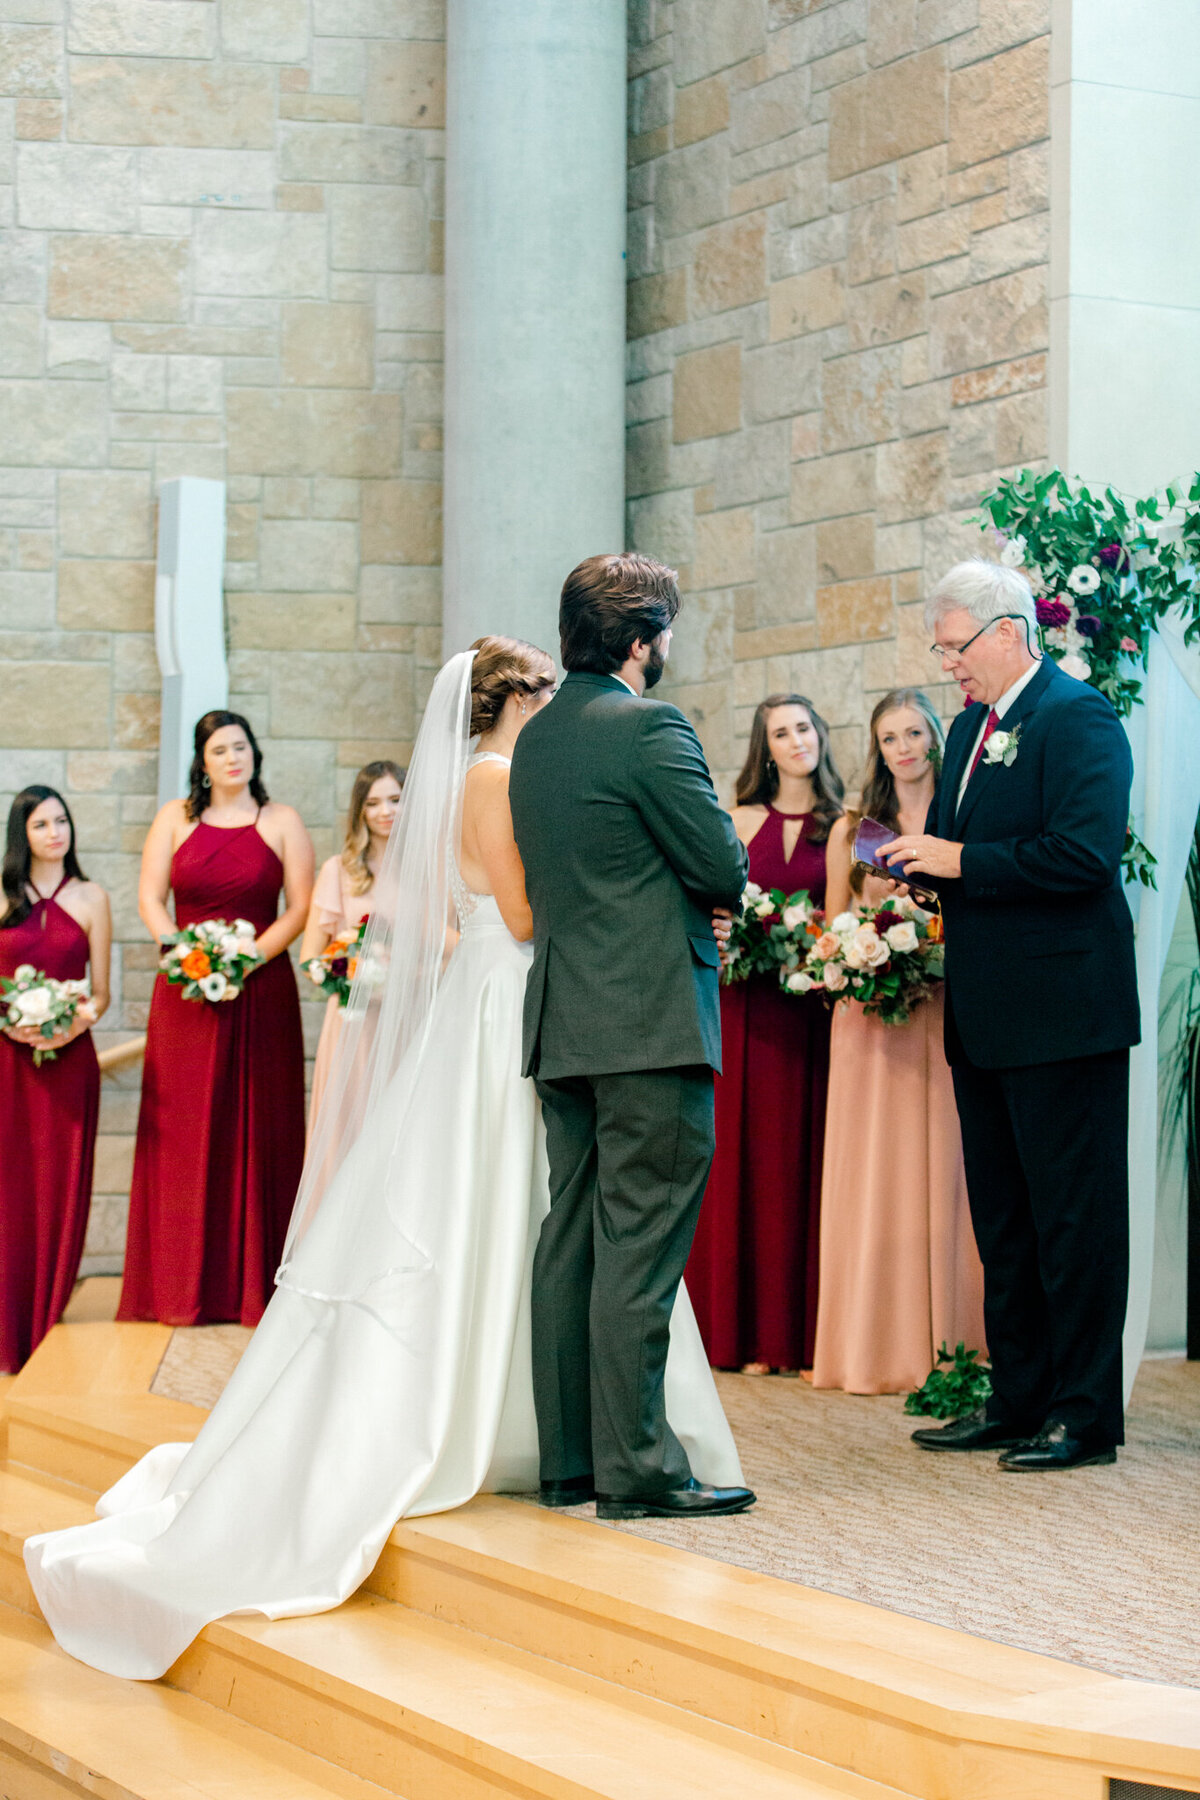 Kaylee & Michael's Wedding at Watermark Community Church | Dallas Wedding Photographer | Sami Kathryn Photography-107